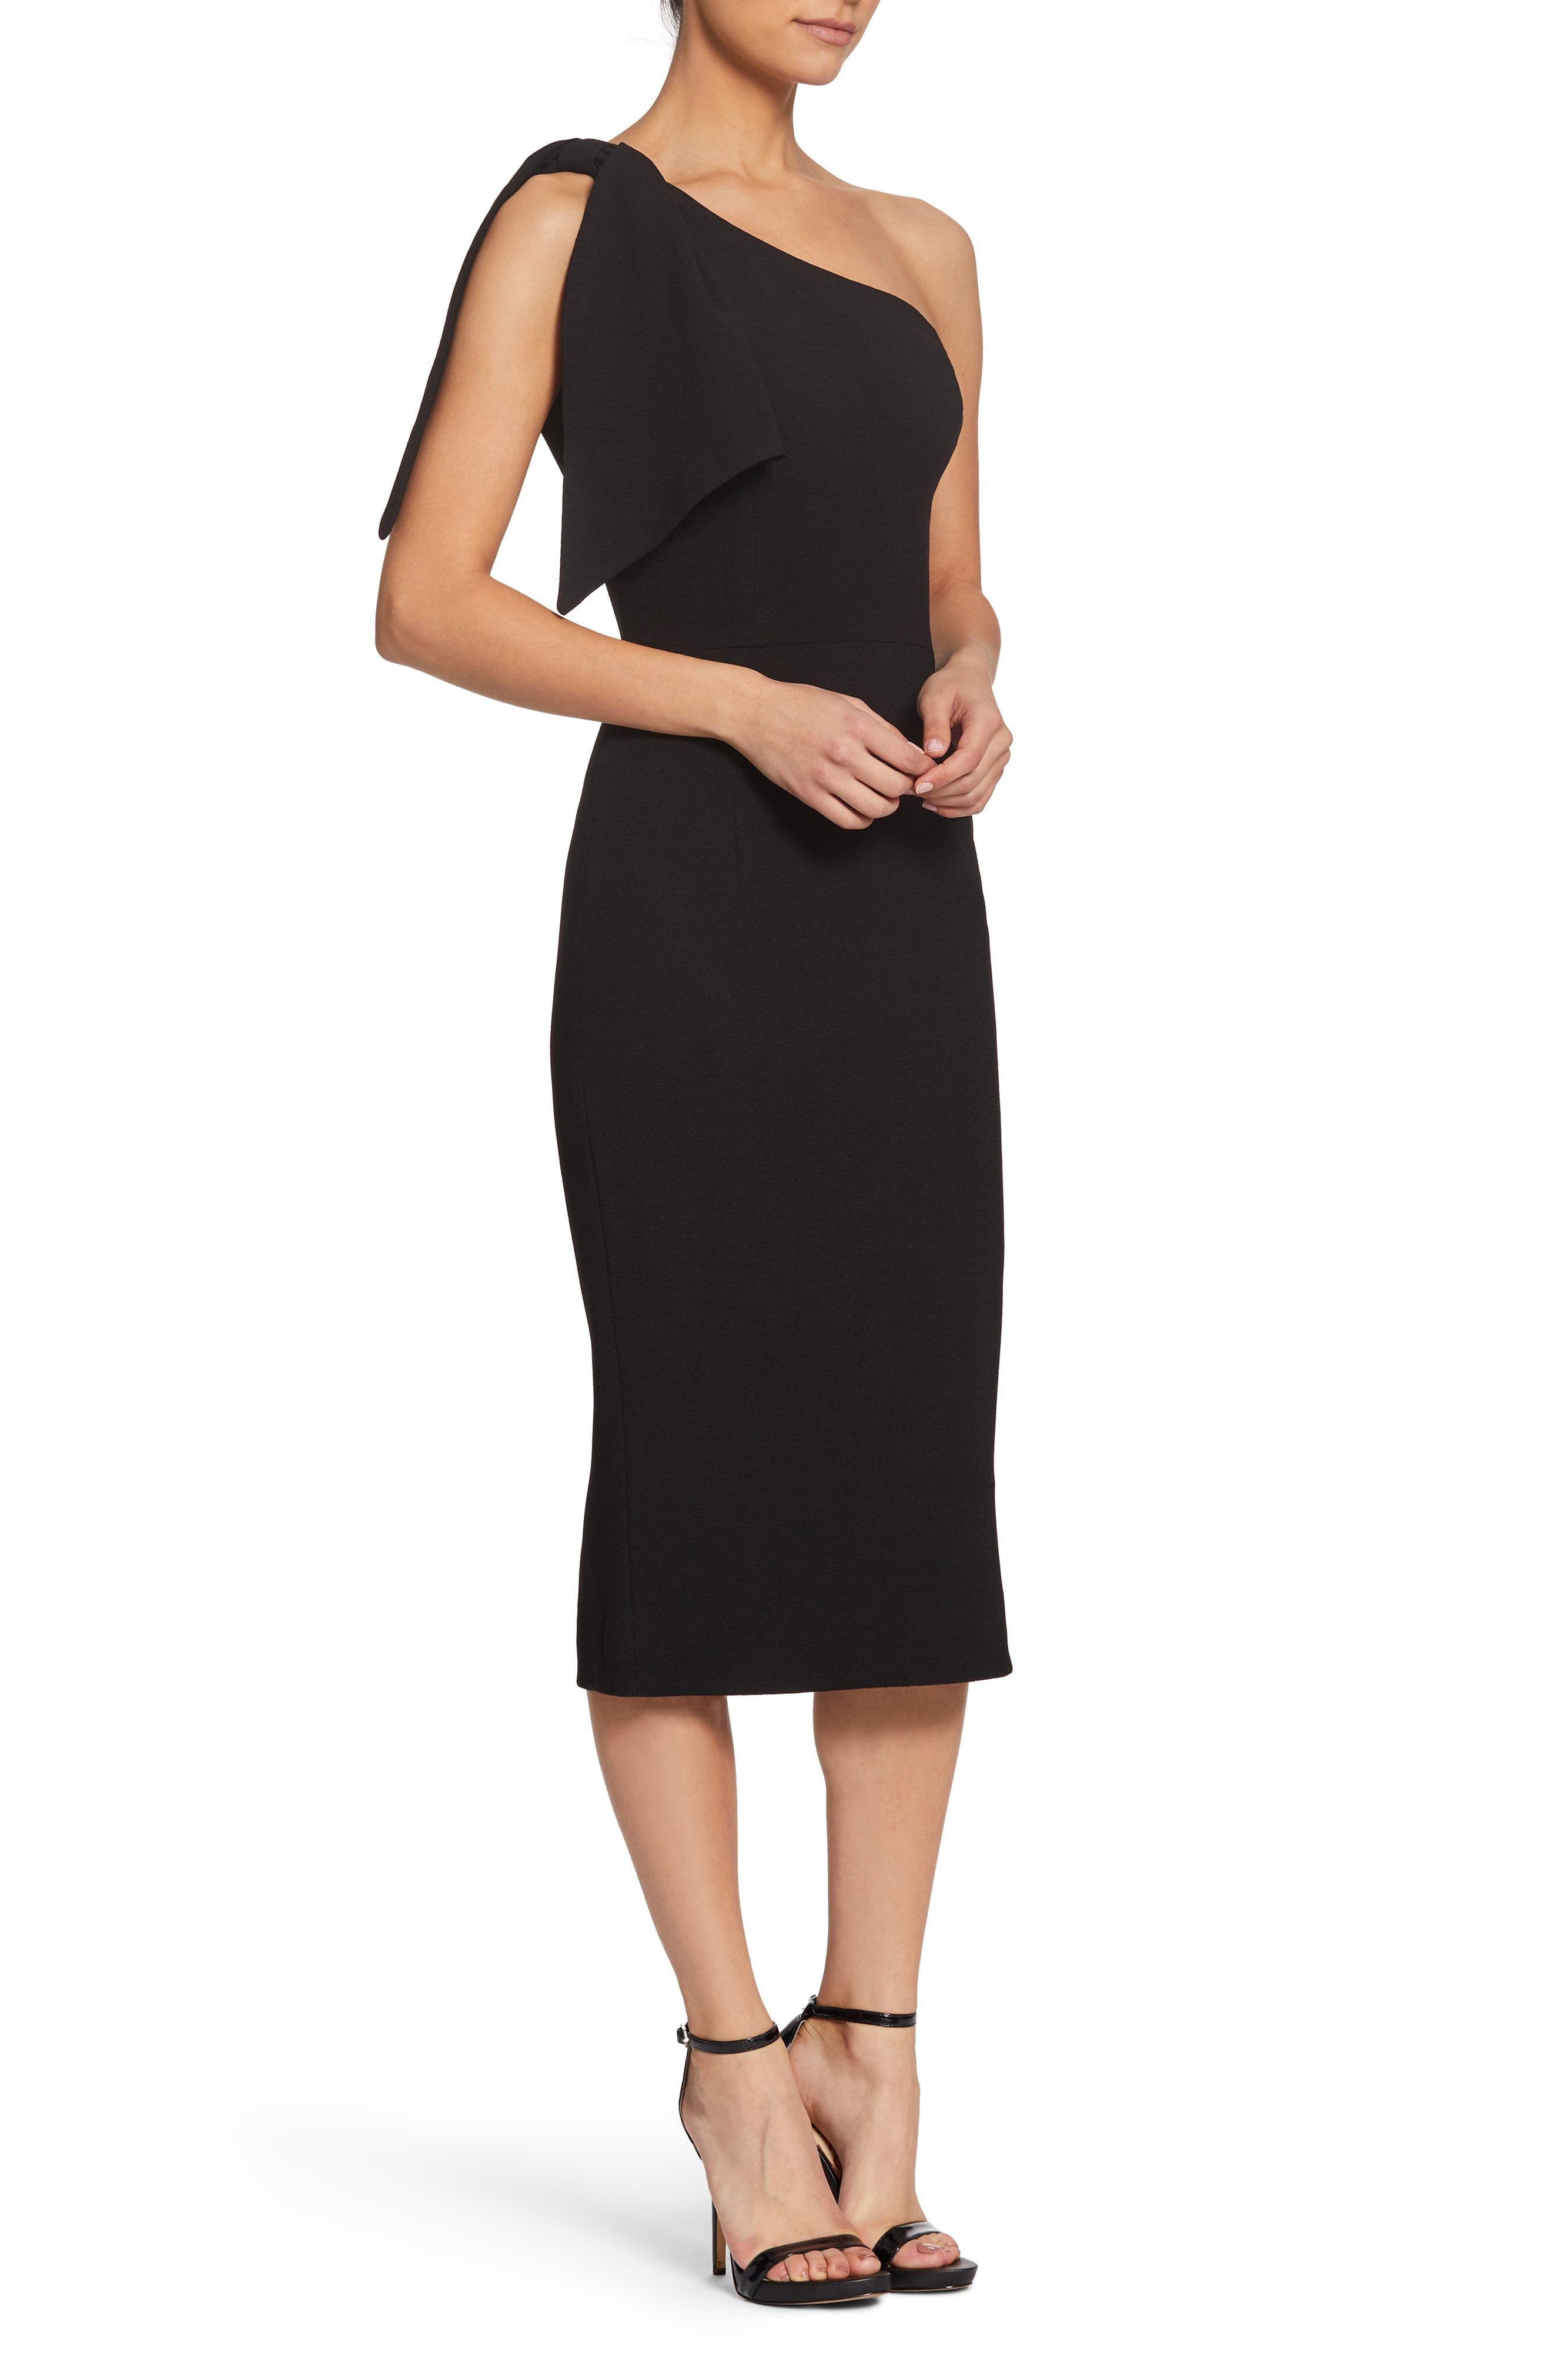 Tiffany One-Shoulder Midi Dress,                             Alternate thumbnail 3, color,                             BLACK